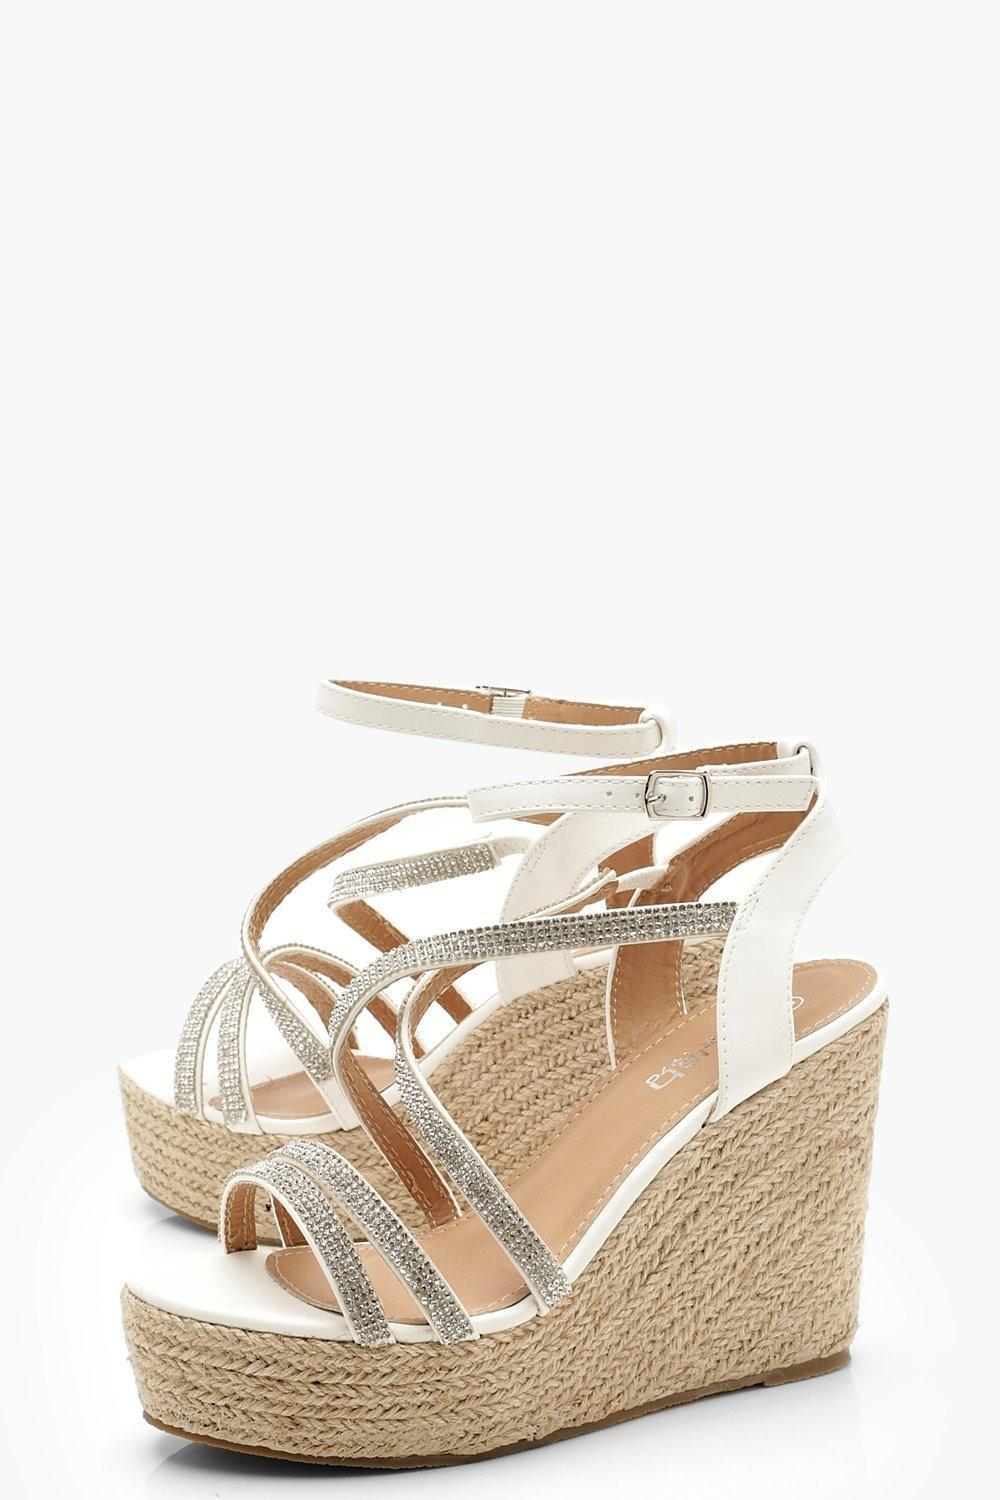 a15d3057054 Boohoo - White Diamante Strap Espadrille Wedges - Lyst. View fullscreen